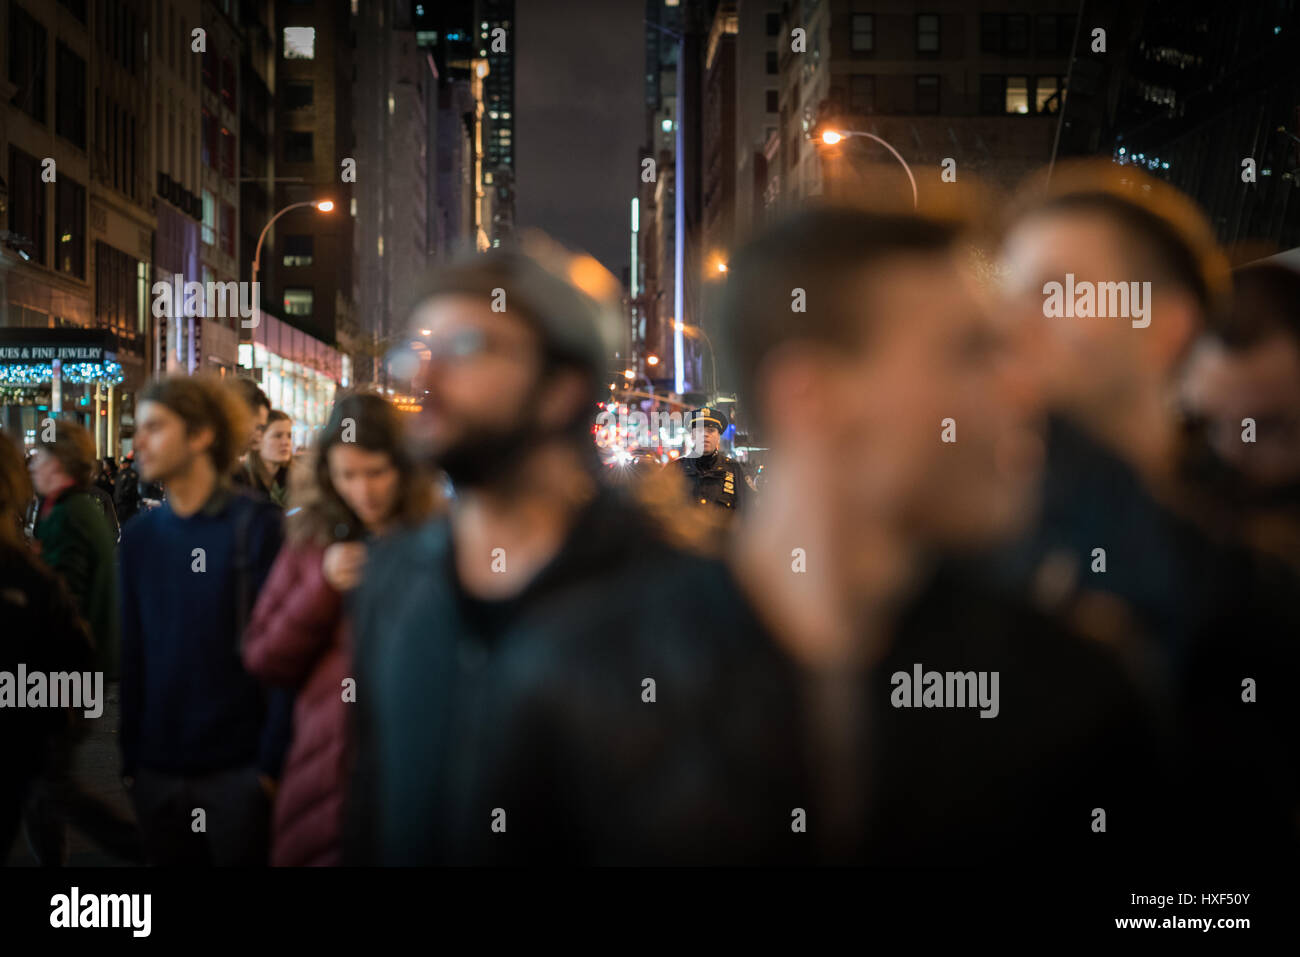 NYPD officer watches the crowd as they slowly disperse at the end anti-Trump rally. - Stock Image